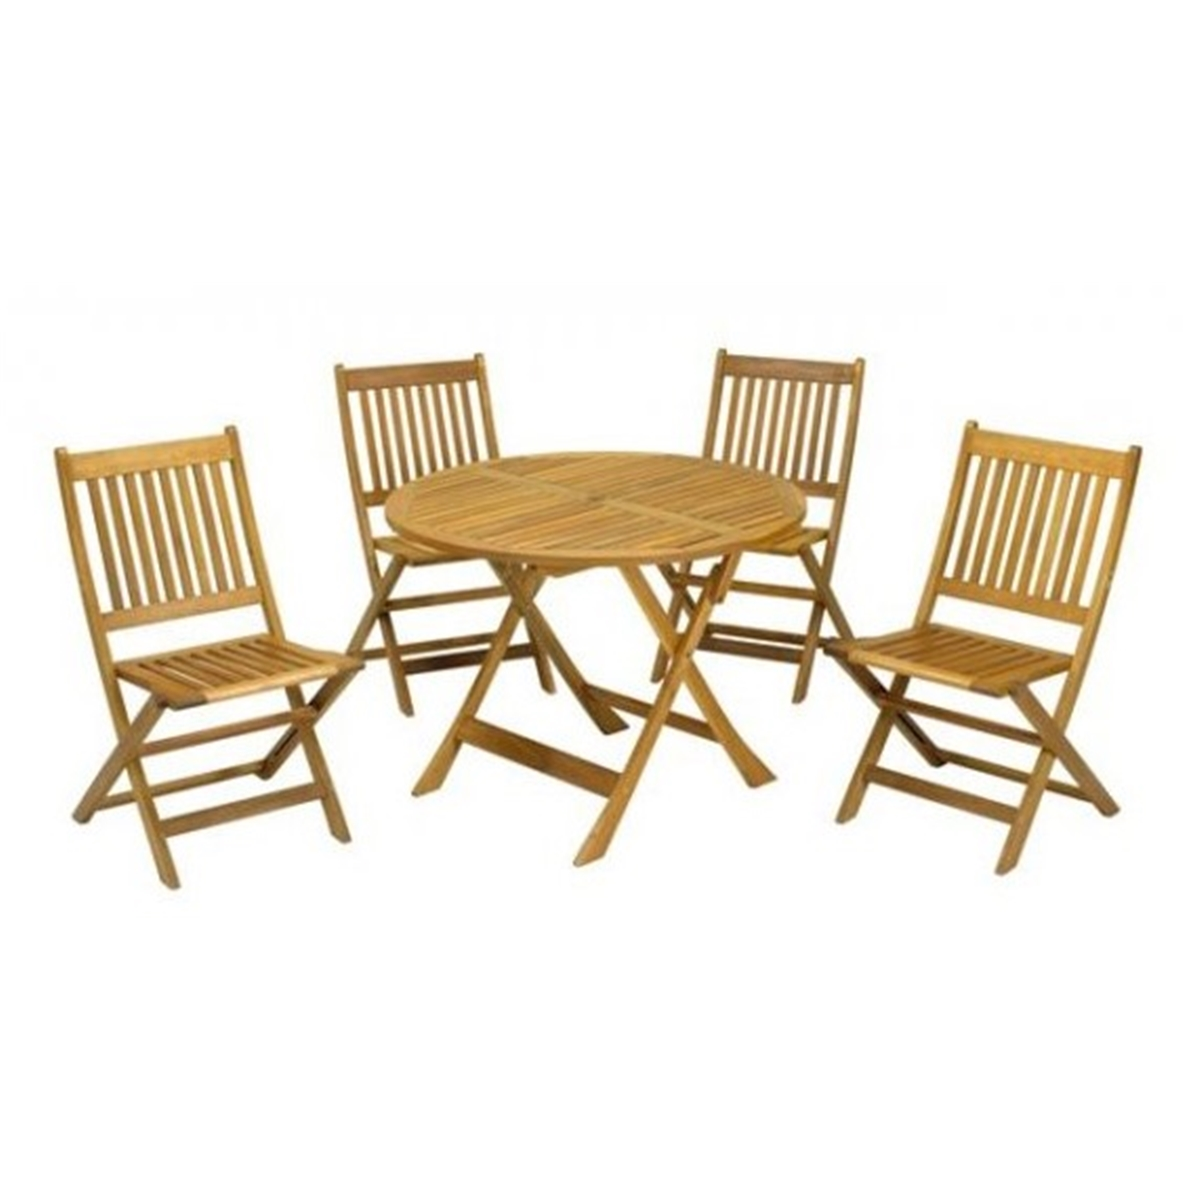 Next Dining Table And Bench Set Dining room set with  : 17180 from ubermed.us size 1200 x 1200 jpeg 262kB